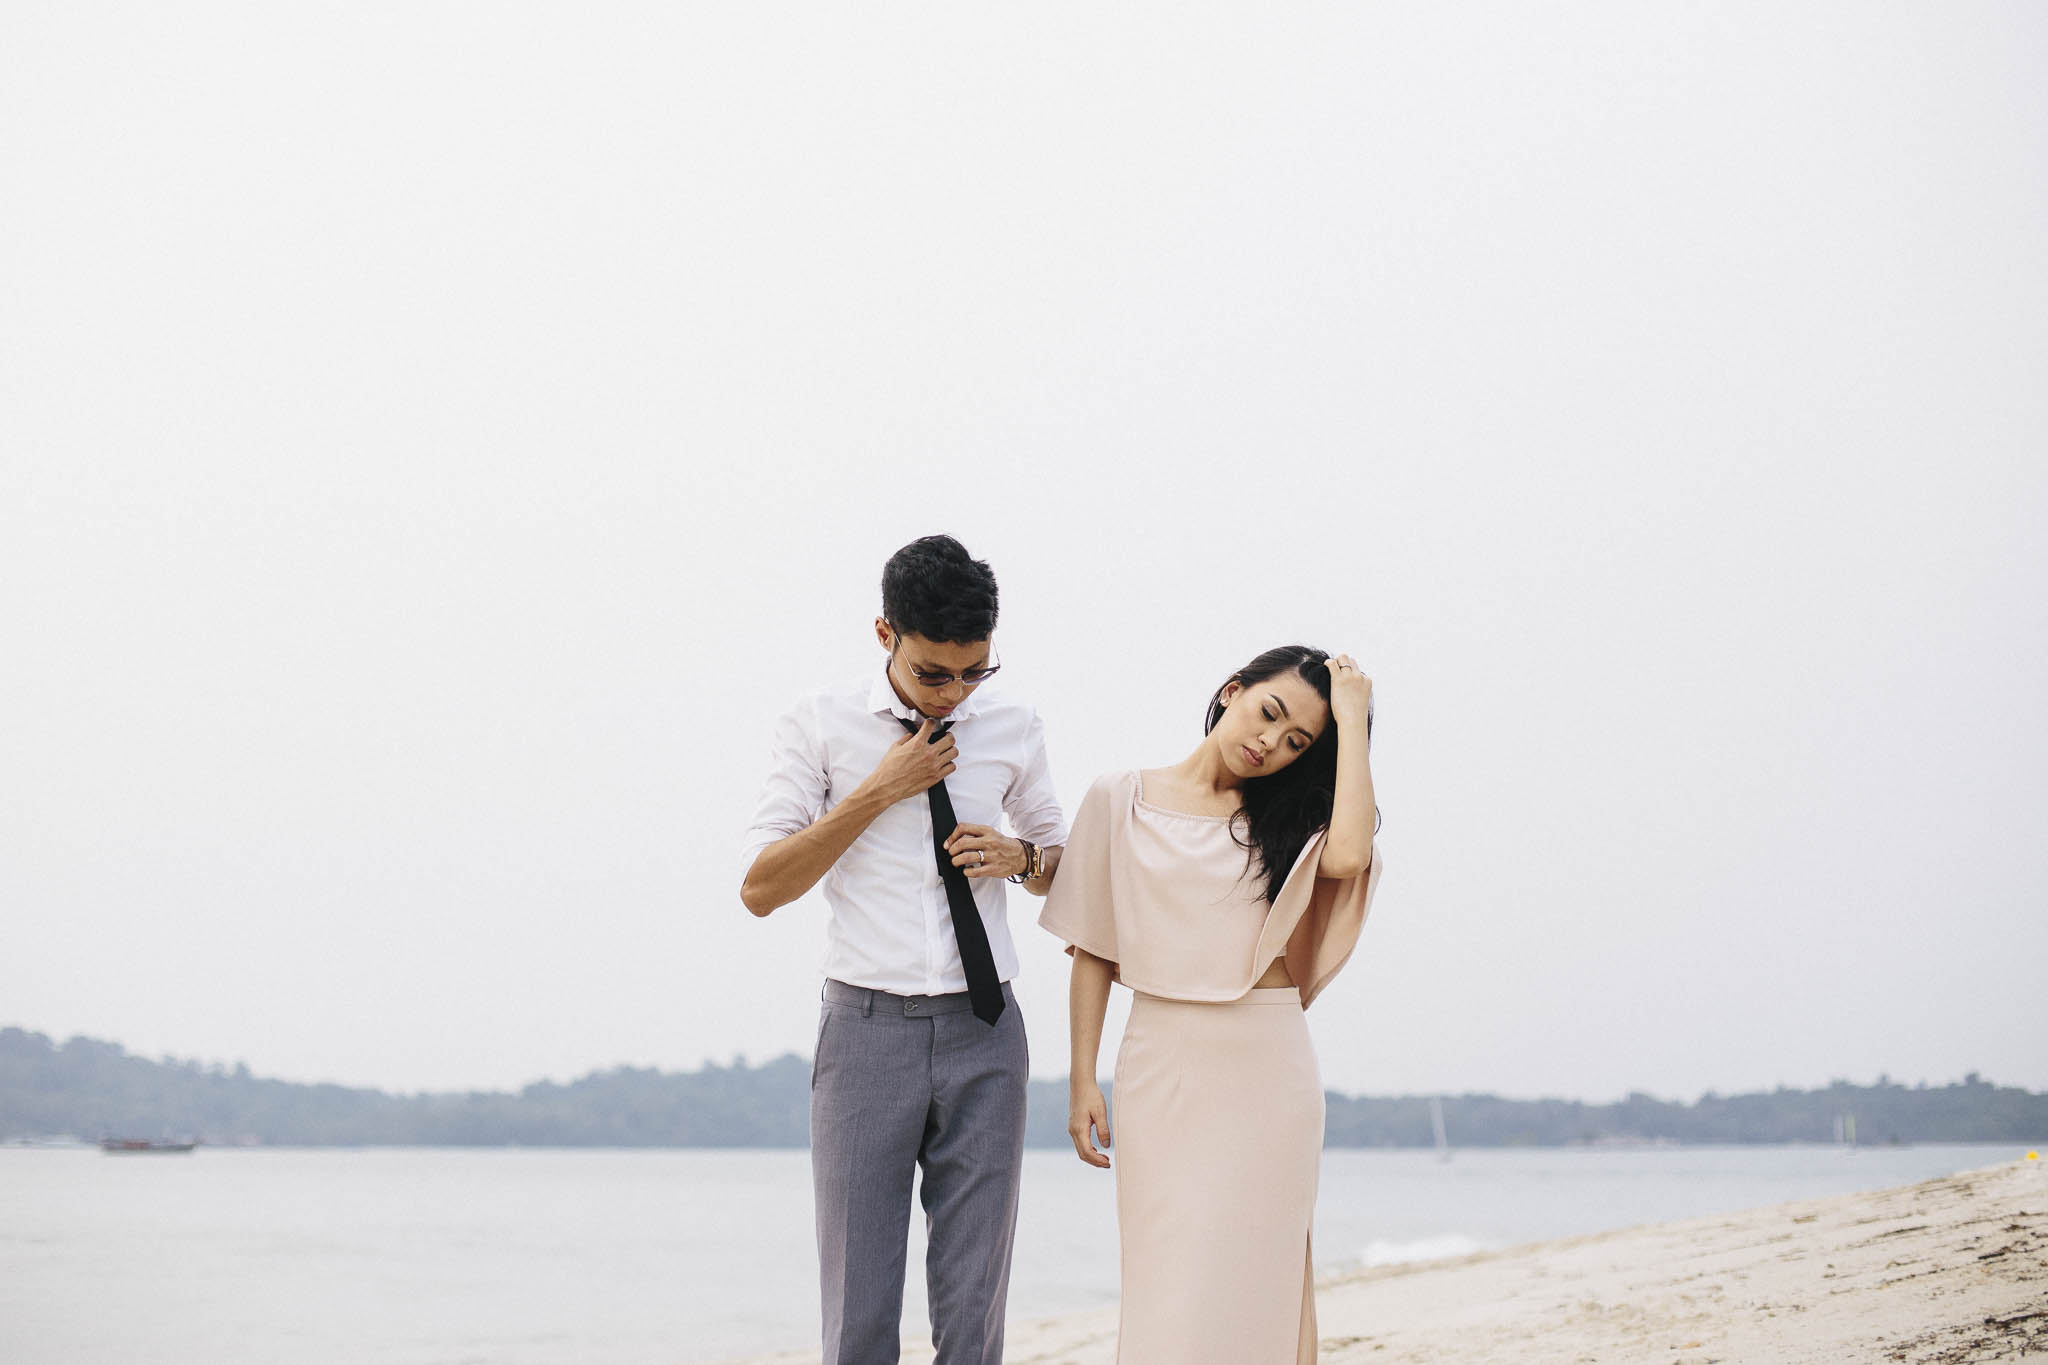 singapore-wedding-photographer-malay-travel-adli-tashah-28.jpg